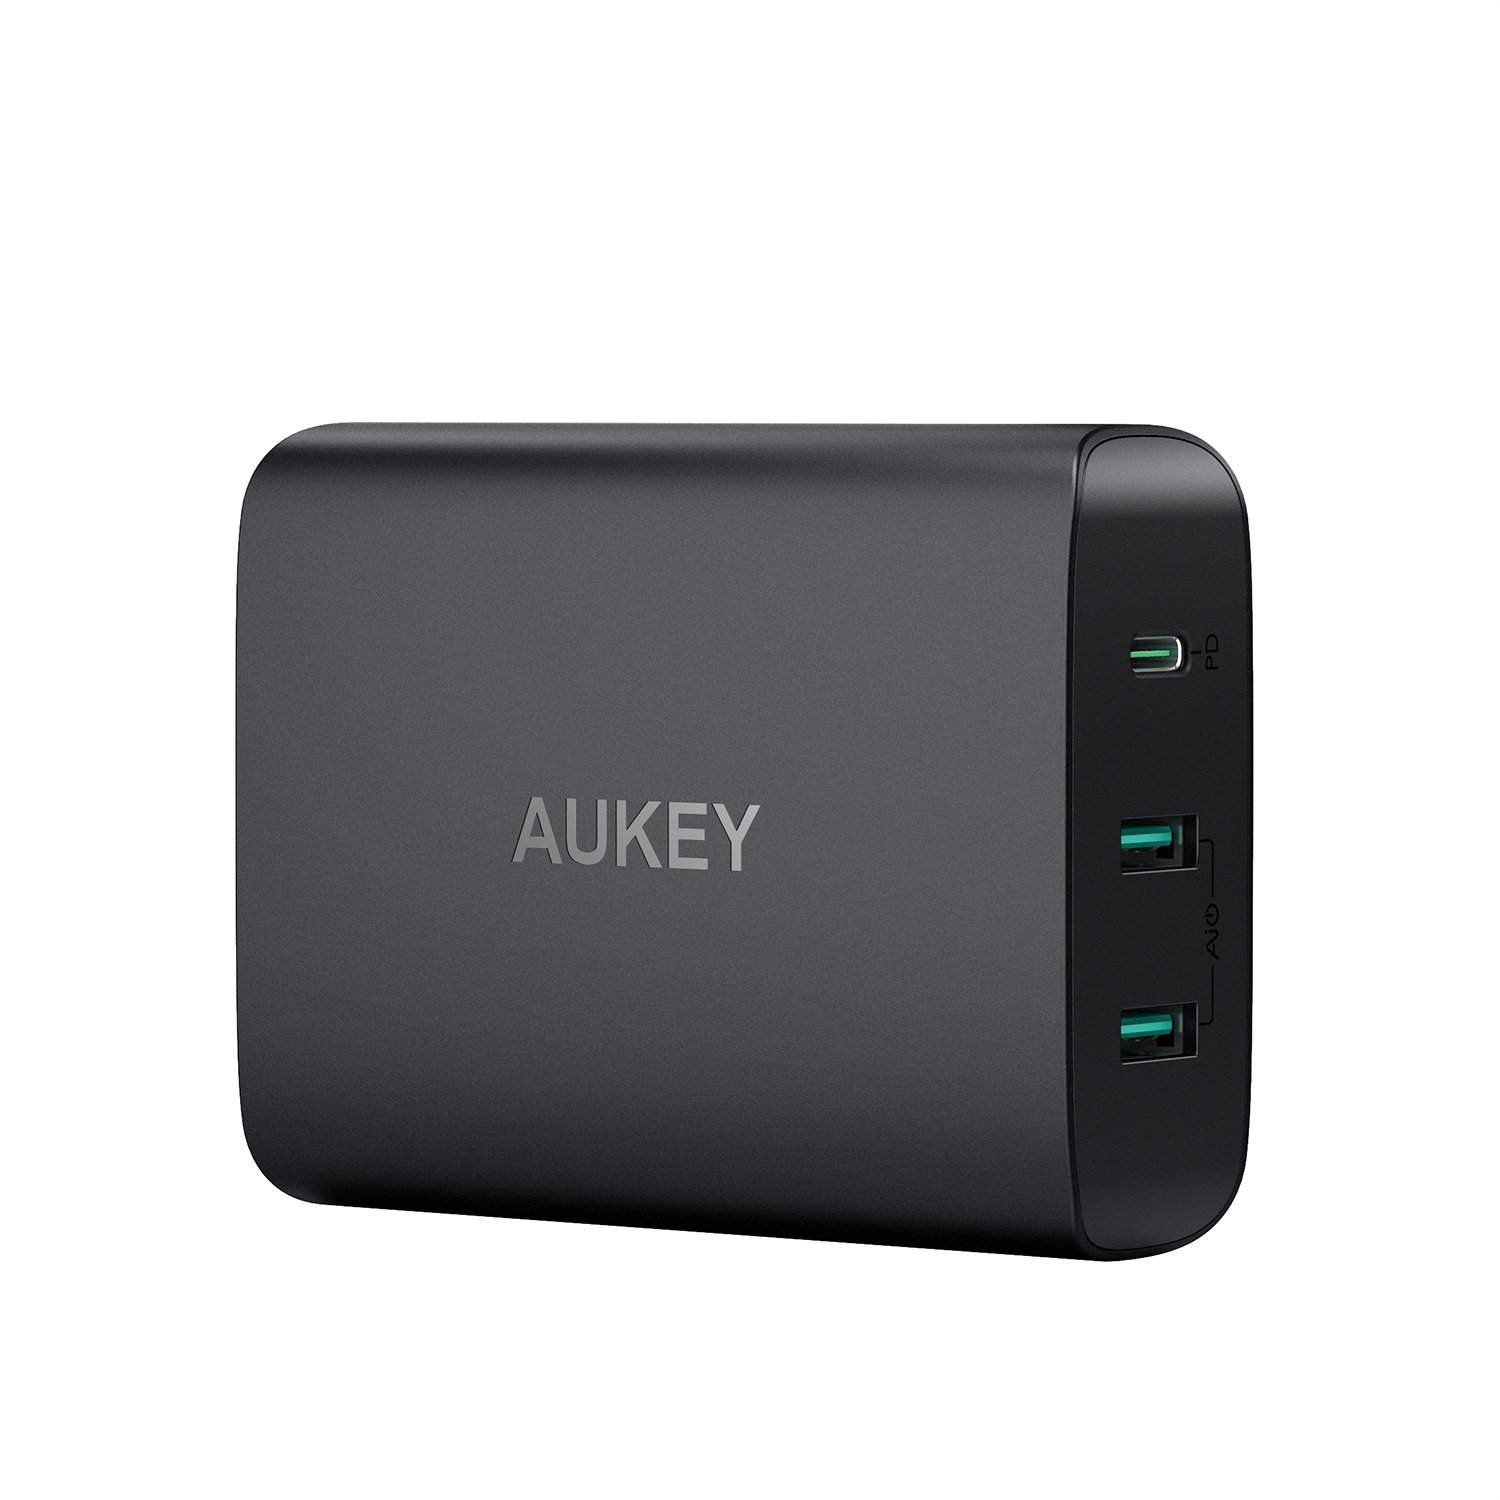 AUKEY USB C Charger with 60W Power Delivery 3.0 & Dual Port USB Charger, Compatible MacBook / Pro, Dell XPS, iPhone XS / XS Max / XR, Samsung Galaxy S8 / S8+ / Note8 and More PA-Y12-US